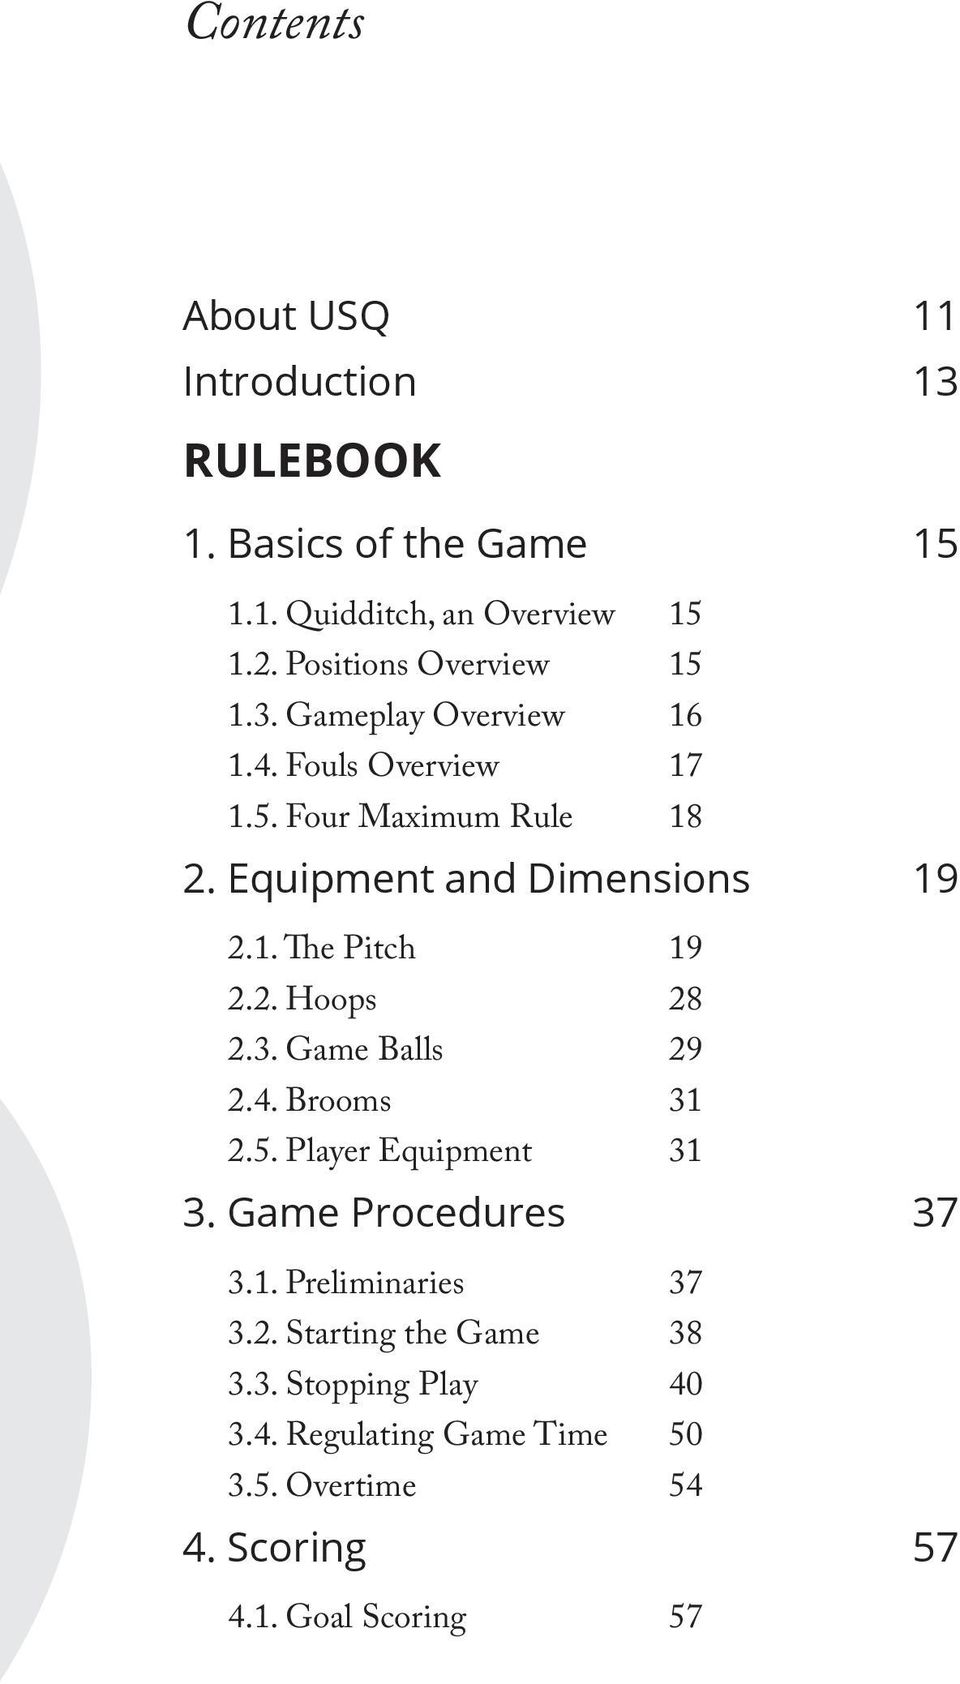 Equipment and Dimensions 19 2.1. The Pitch 19 2.2. Hoops 28 2.3. Game Balls 29 2.4. Brooms 31 2.5. Player Equipment 31 3.